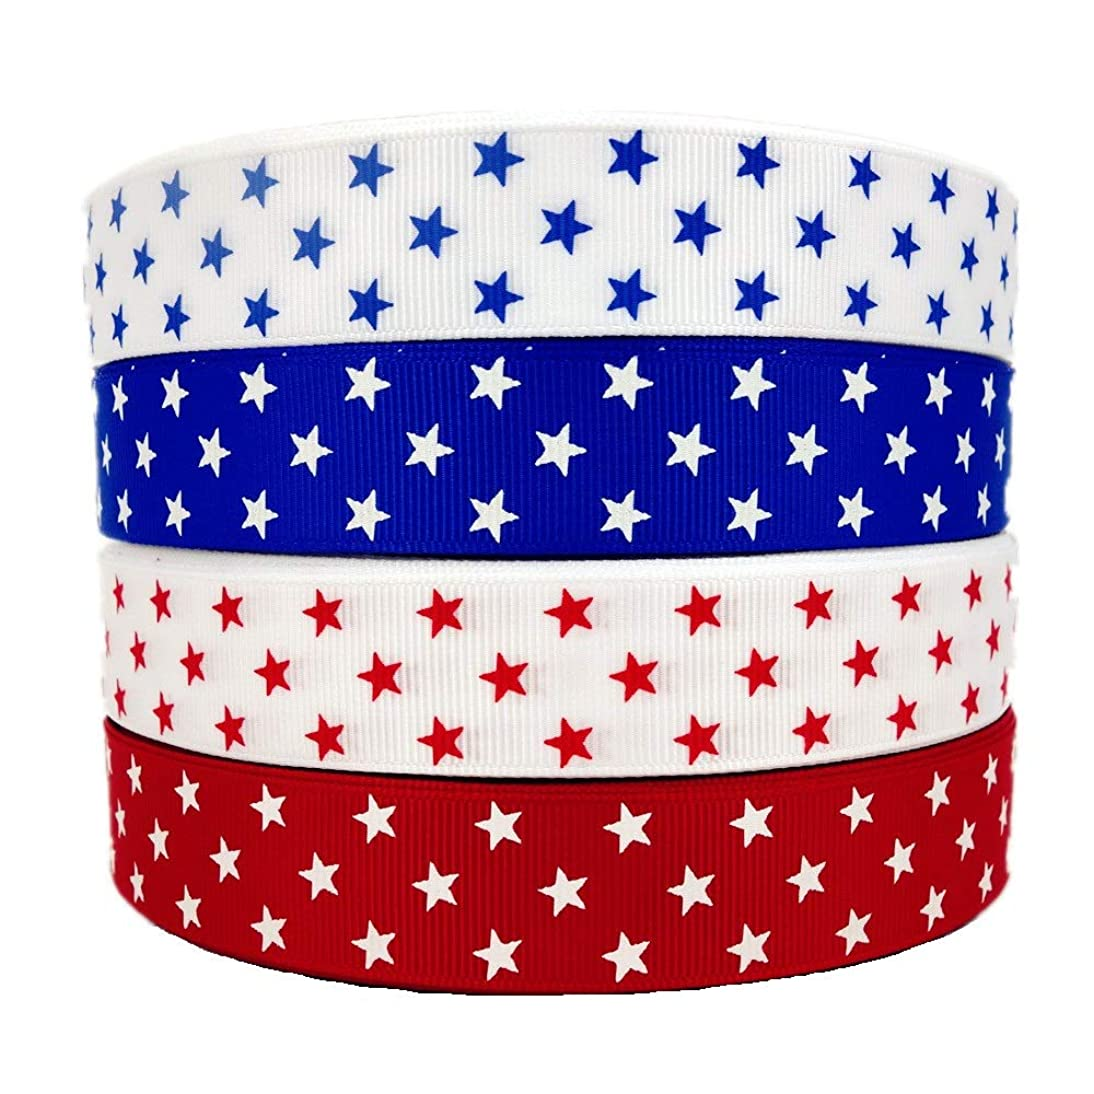 20 Yards (4 X 5yd) 7/8 Inch Grosgrain Star Ribbon 4Th of July Patriotic